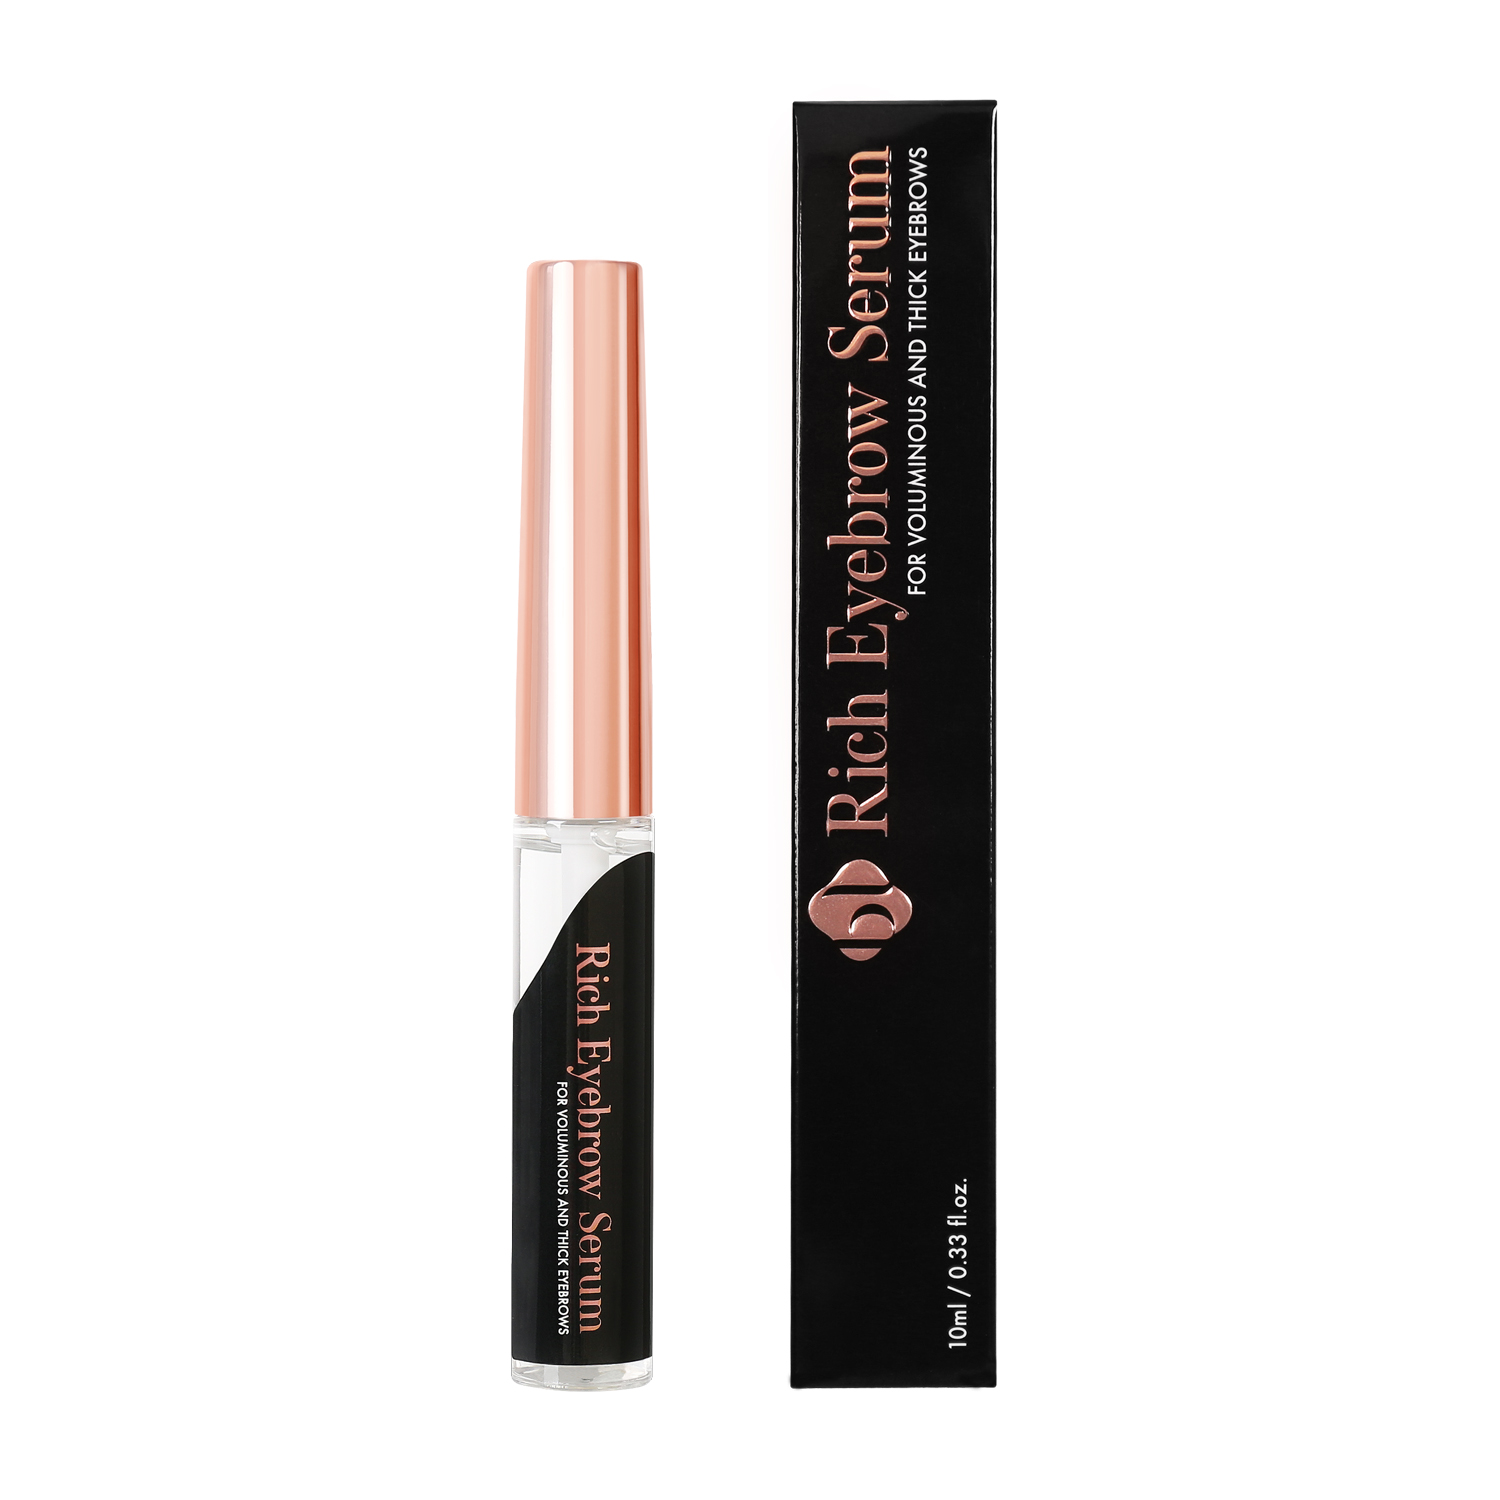 Blink lashes Rich Eyebrow Serum